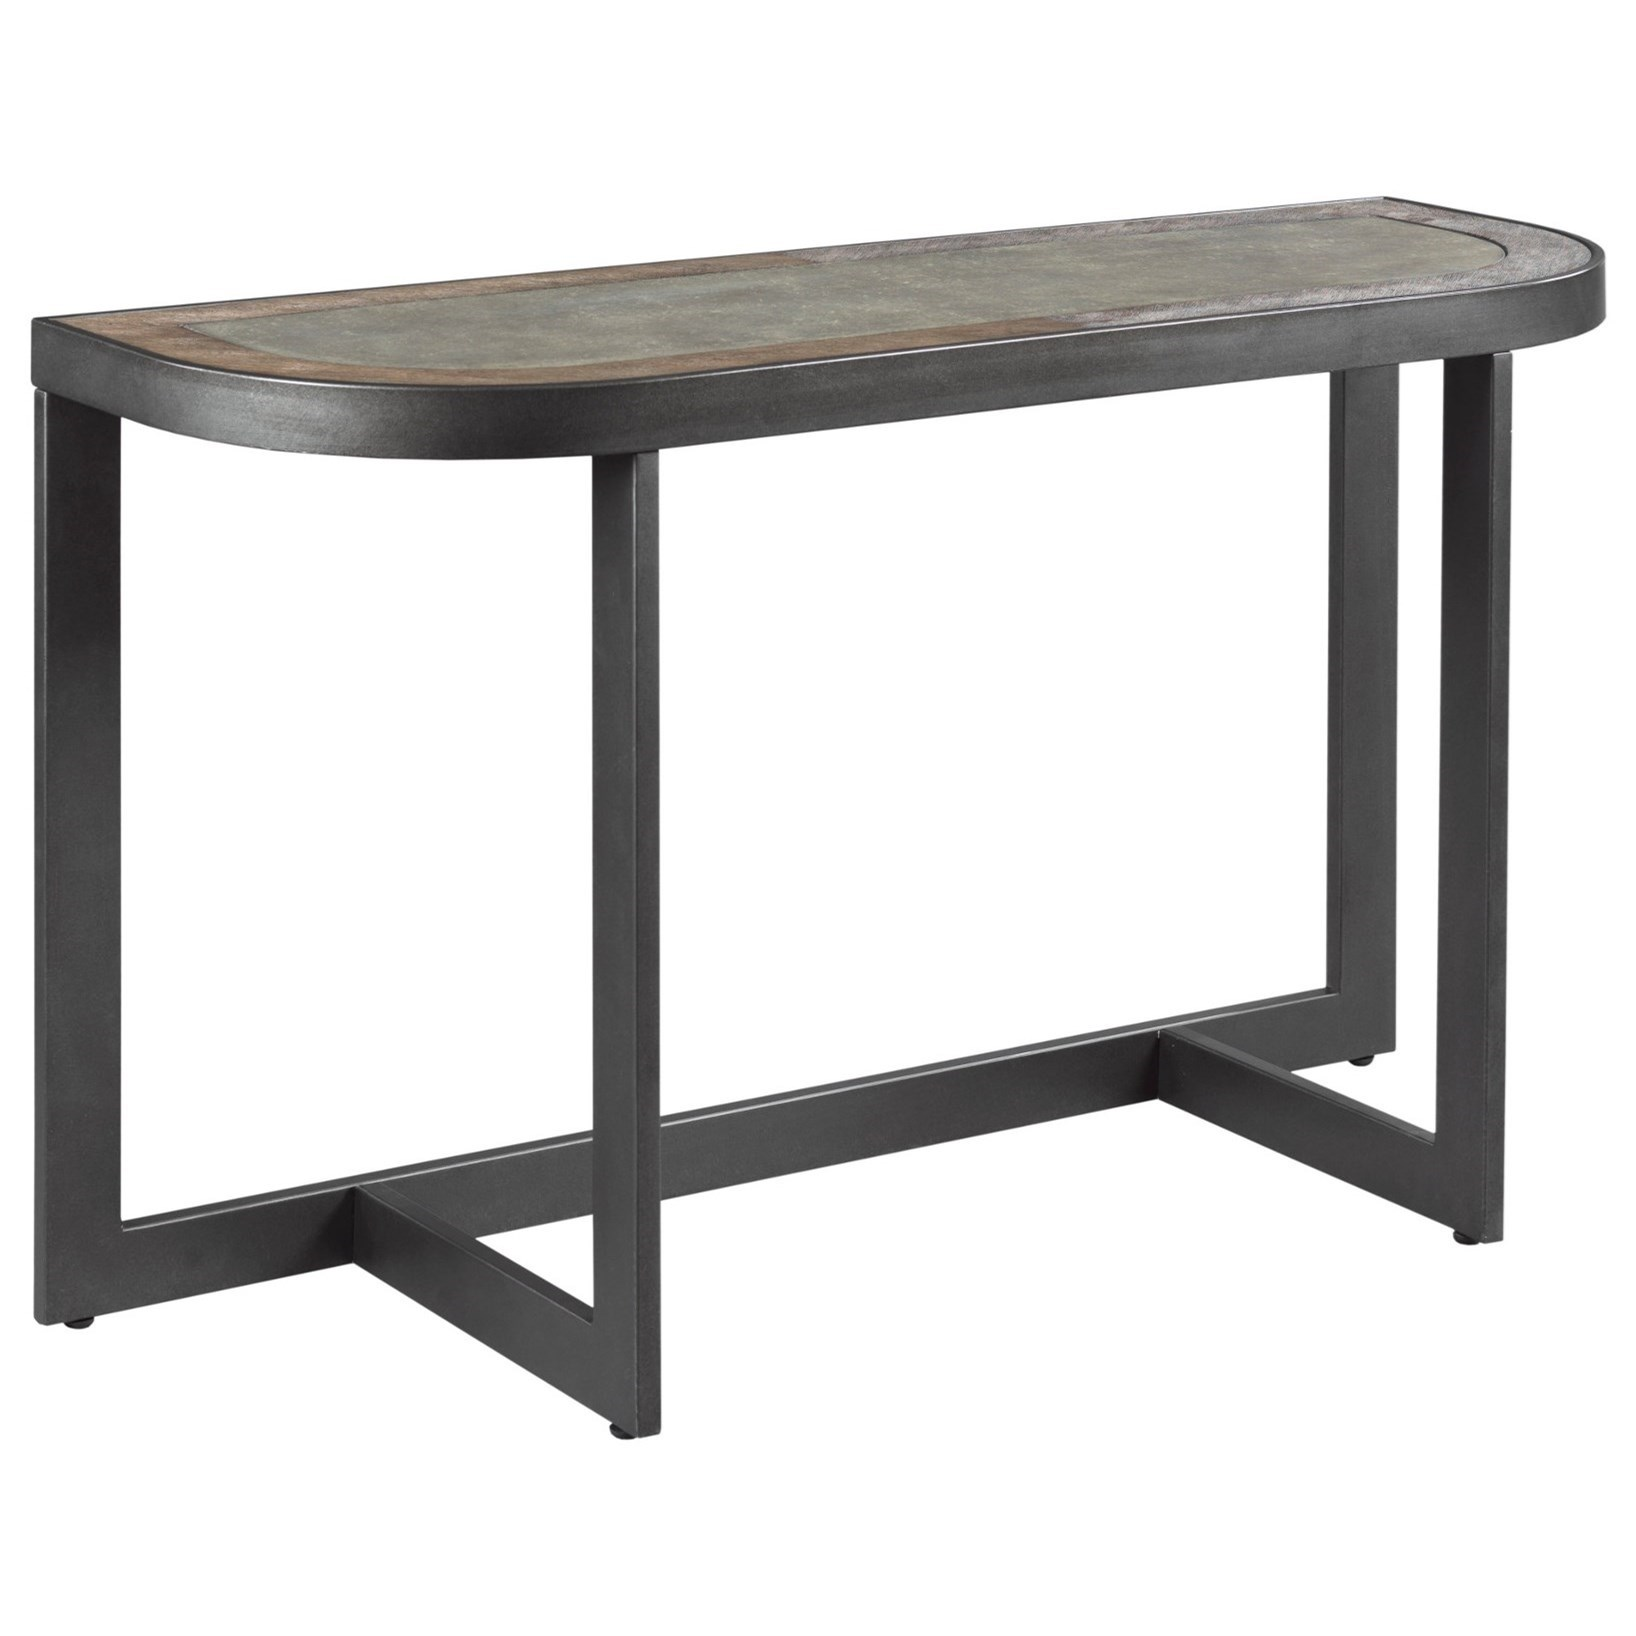 Graystone Sofa Table by England at Van Hill Furniture